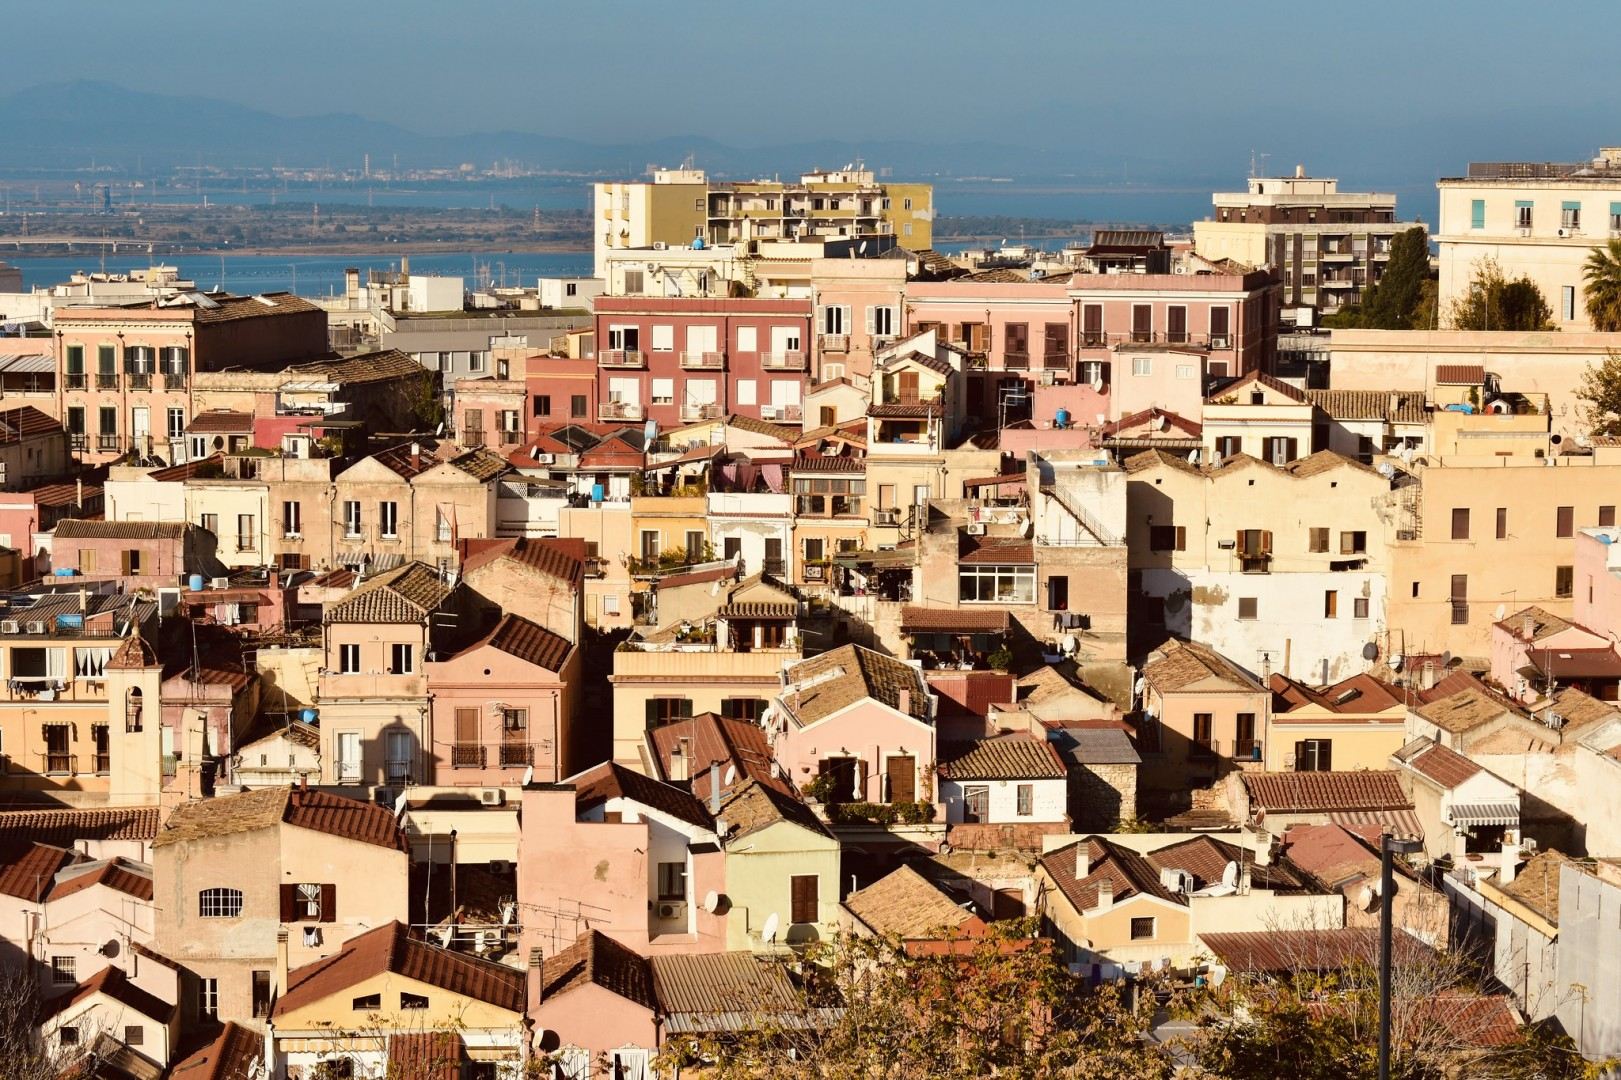 The now-operational 70MW will supply enough power to cover the needs of a fifth of Cagliari homes, Octopus said. Image credit: Wyrd bið ful aræd / Flickr